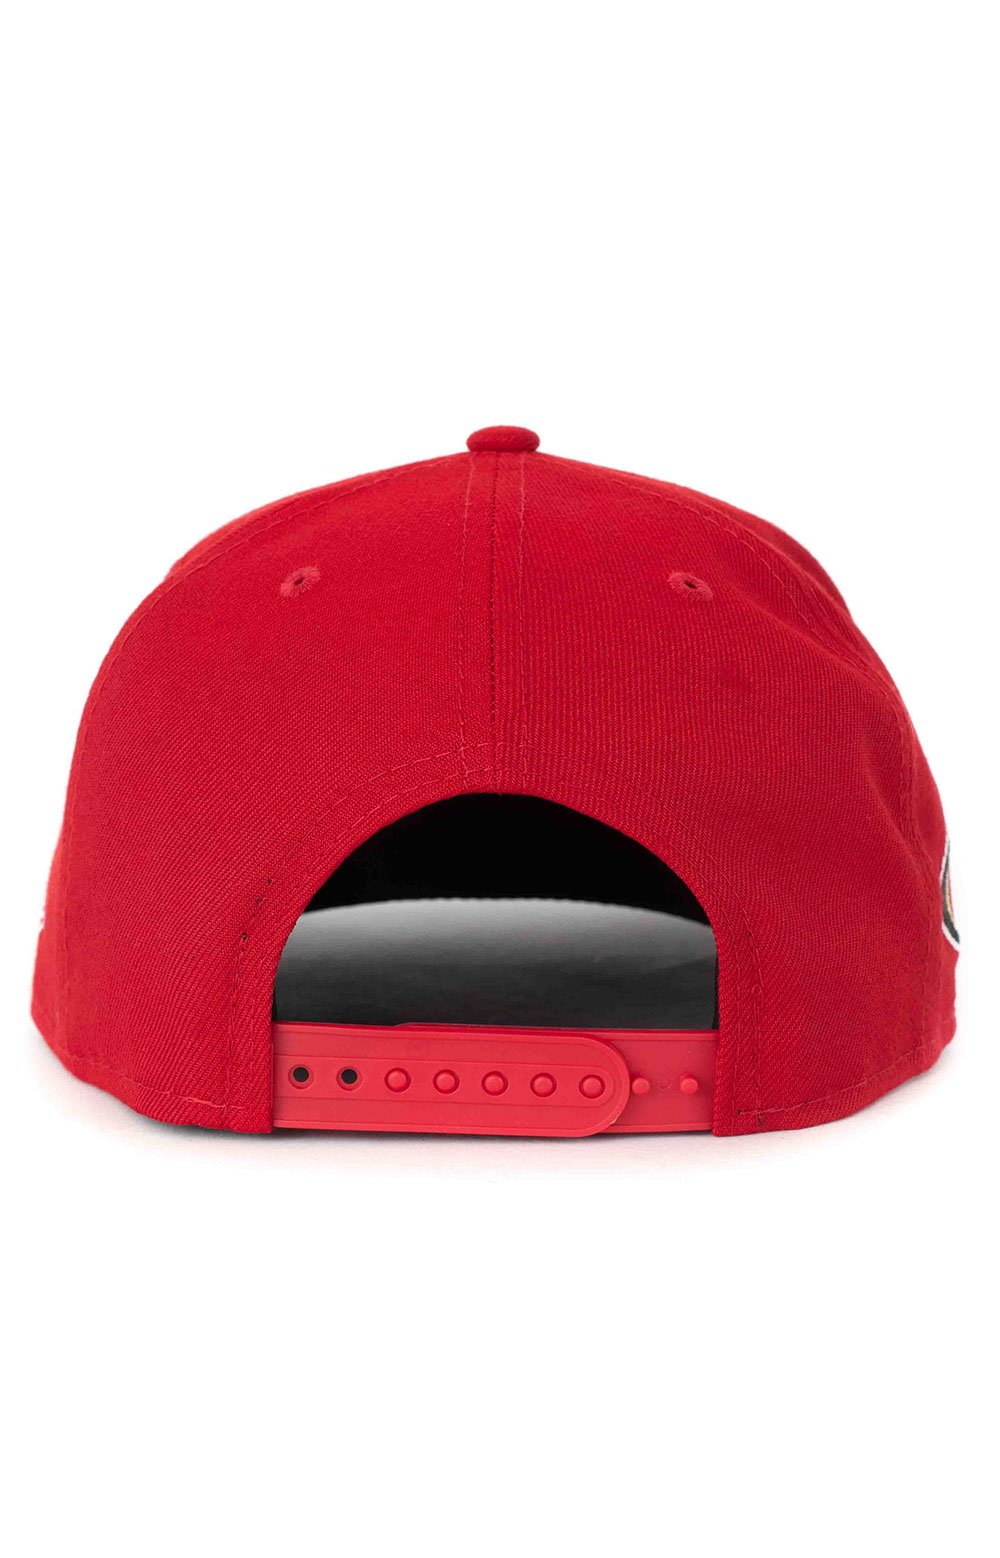 SF 49ers Super Bowl 9Fifty Snap-Back Hat  4